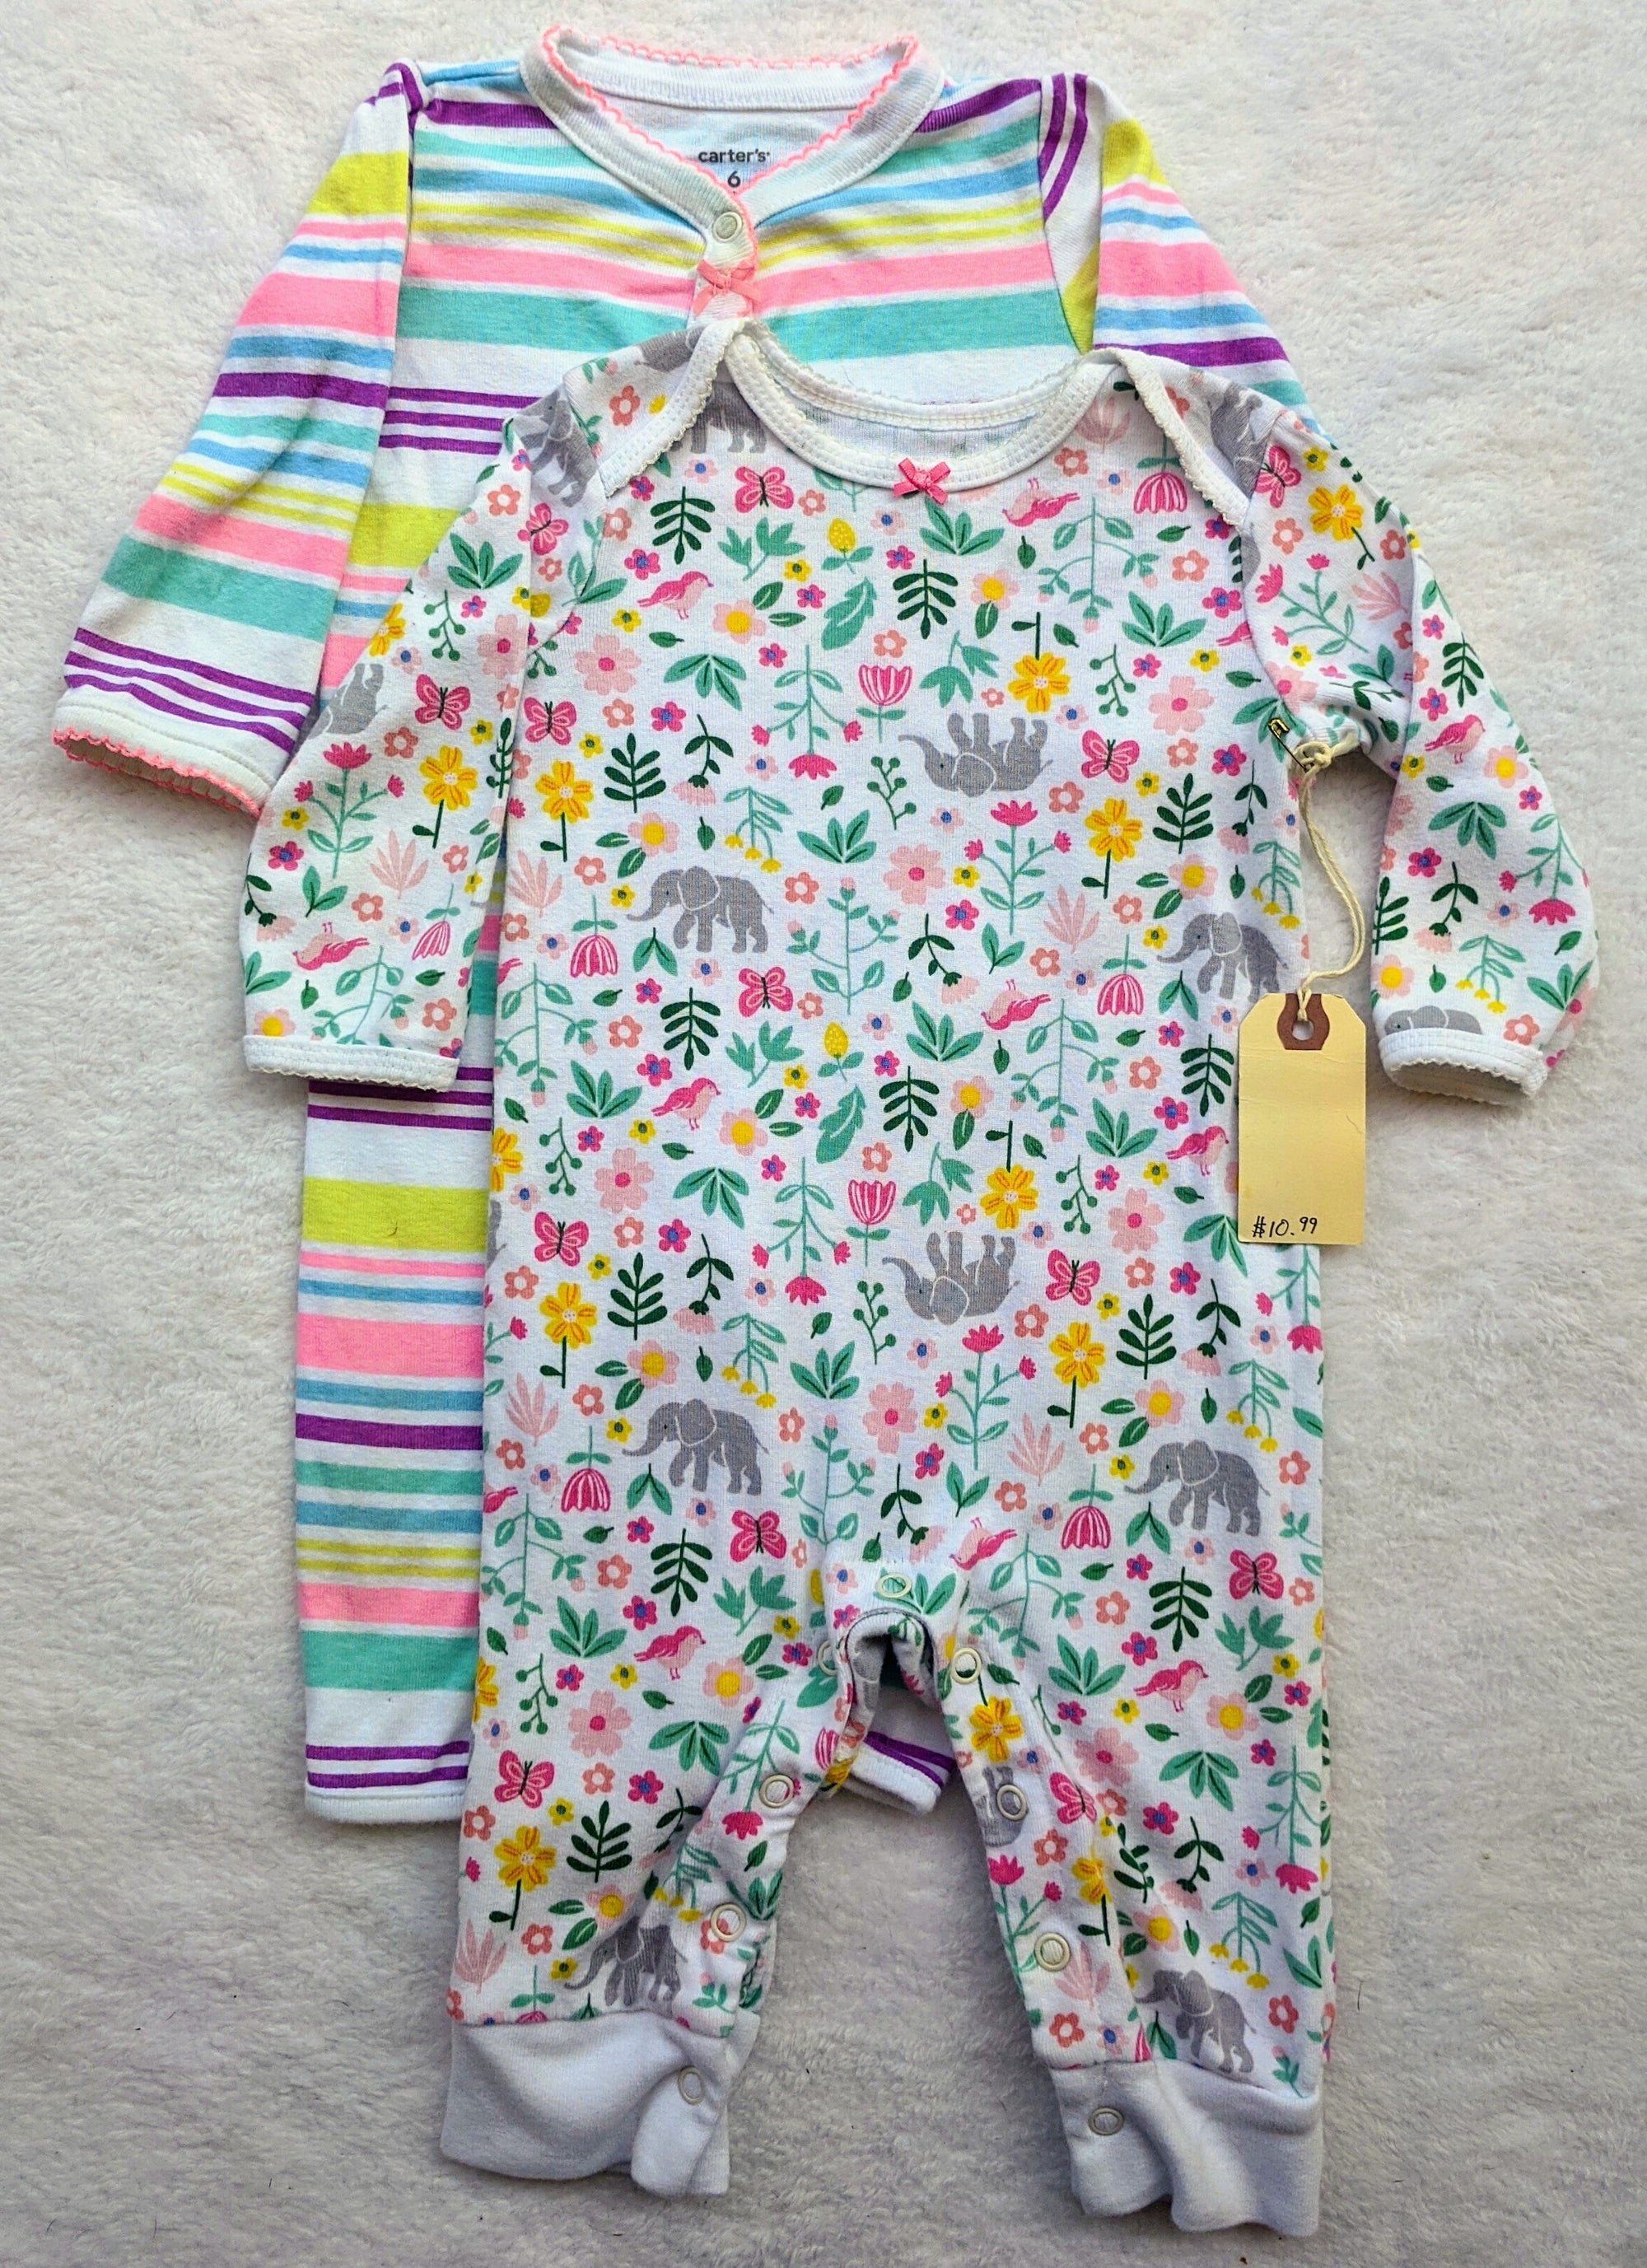 Resale 6 m Carter's Stripes & Elephant Floral Playsuit Set